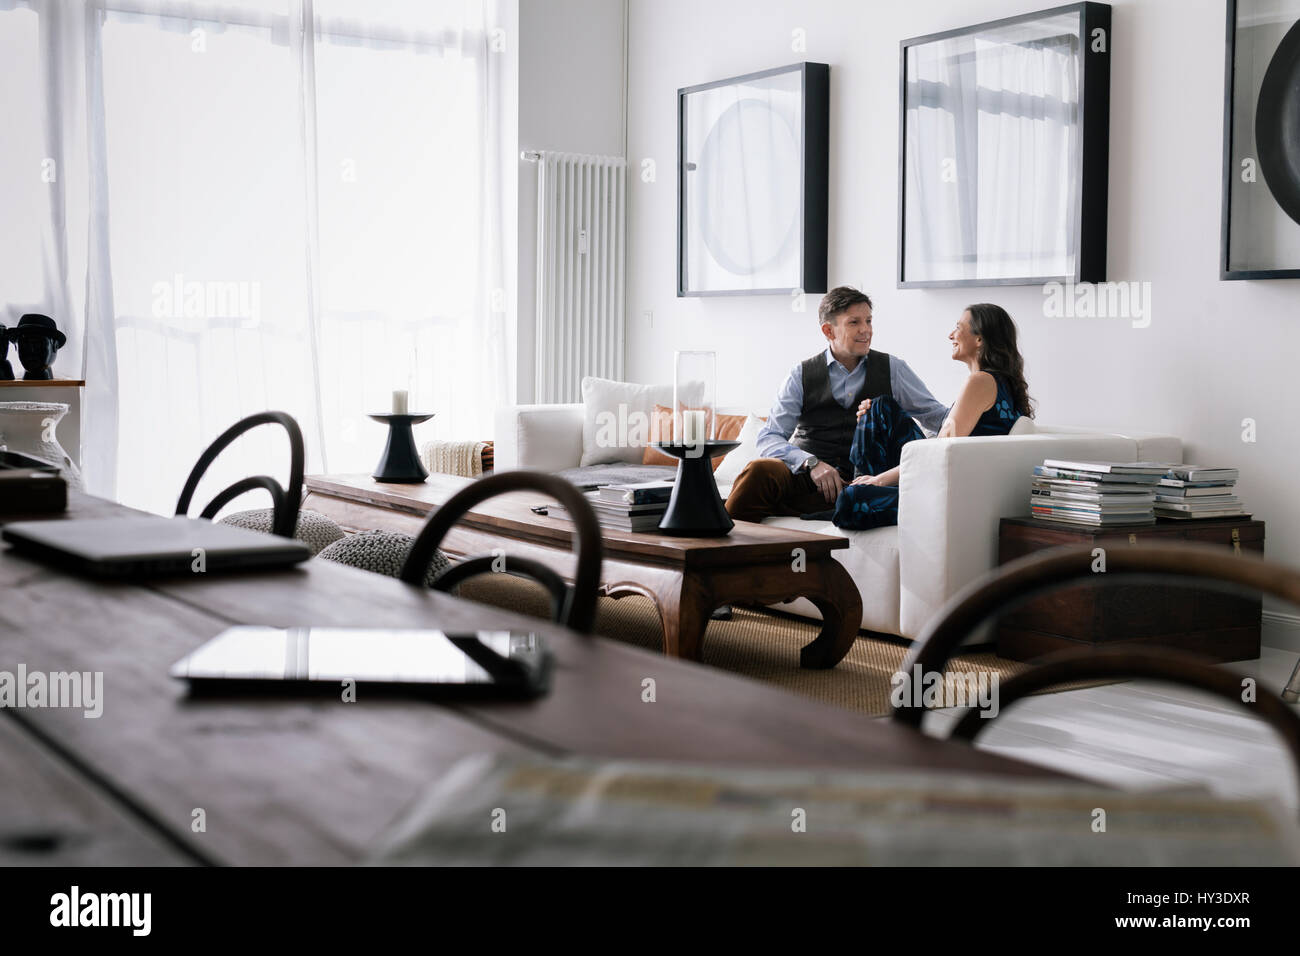 Germany, Couple sitting on sofa in living room - Stock Image